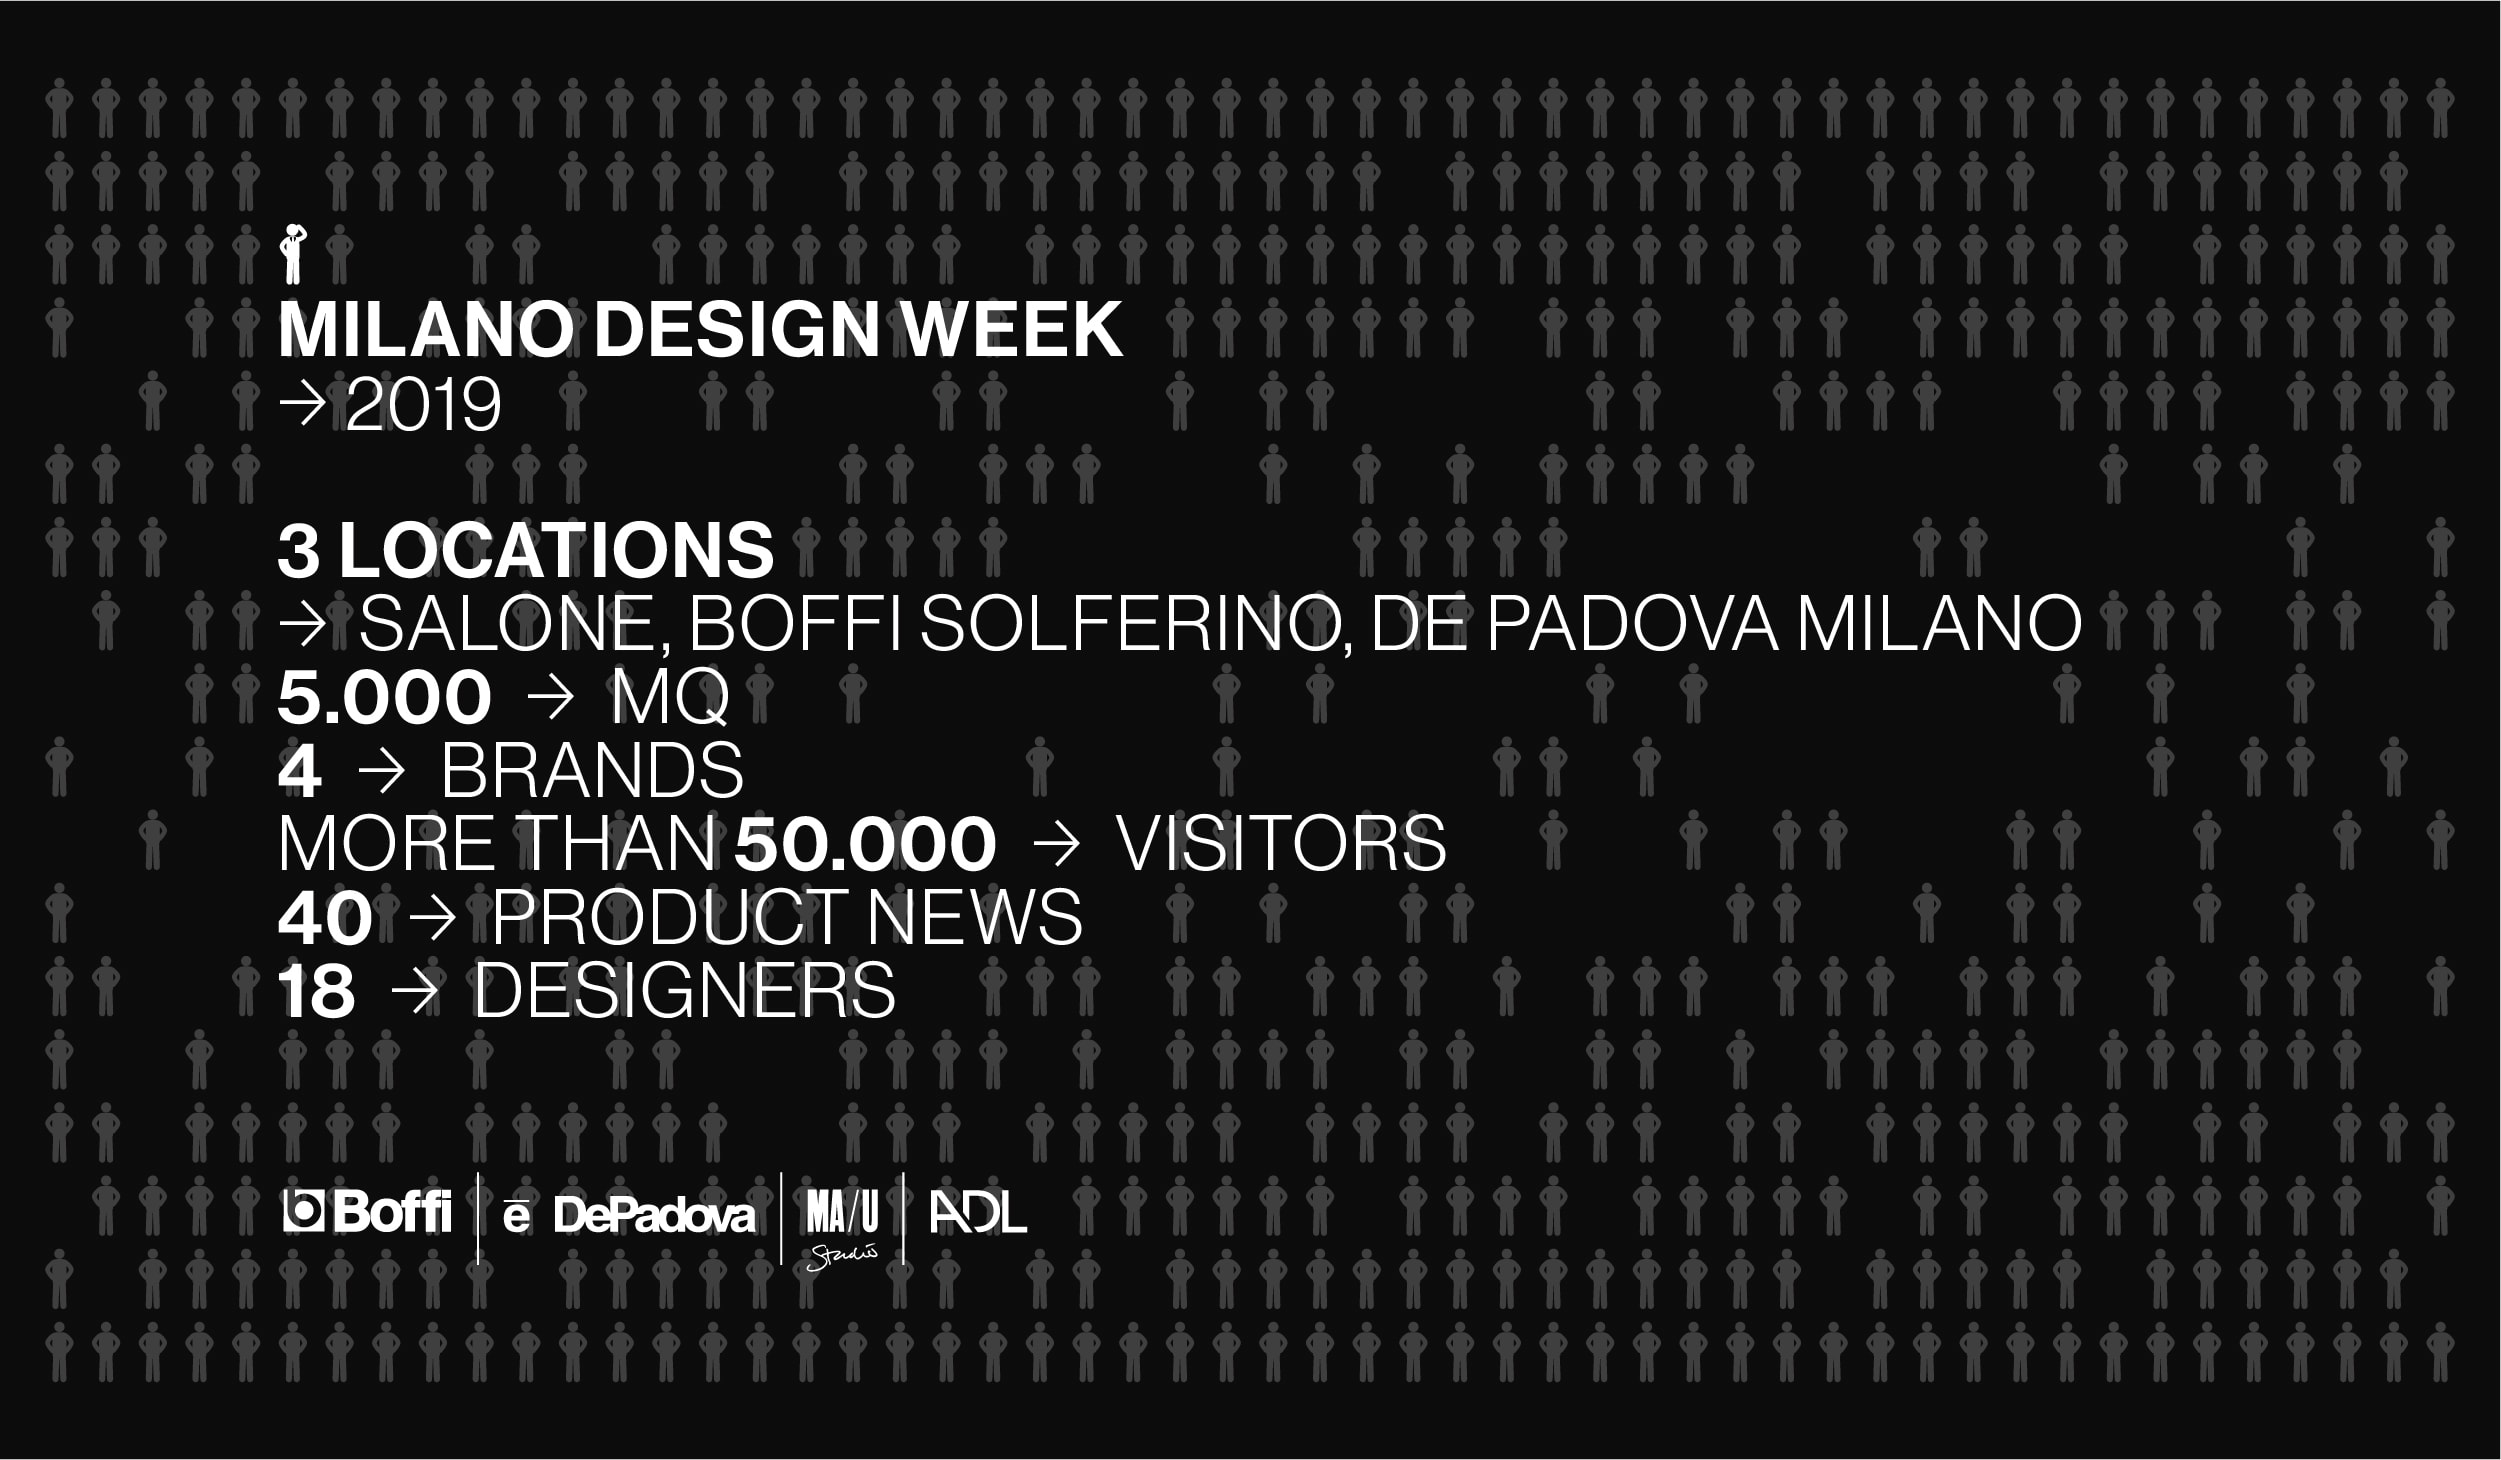 Milano Design Week 2019 review